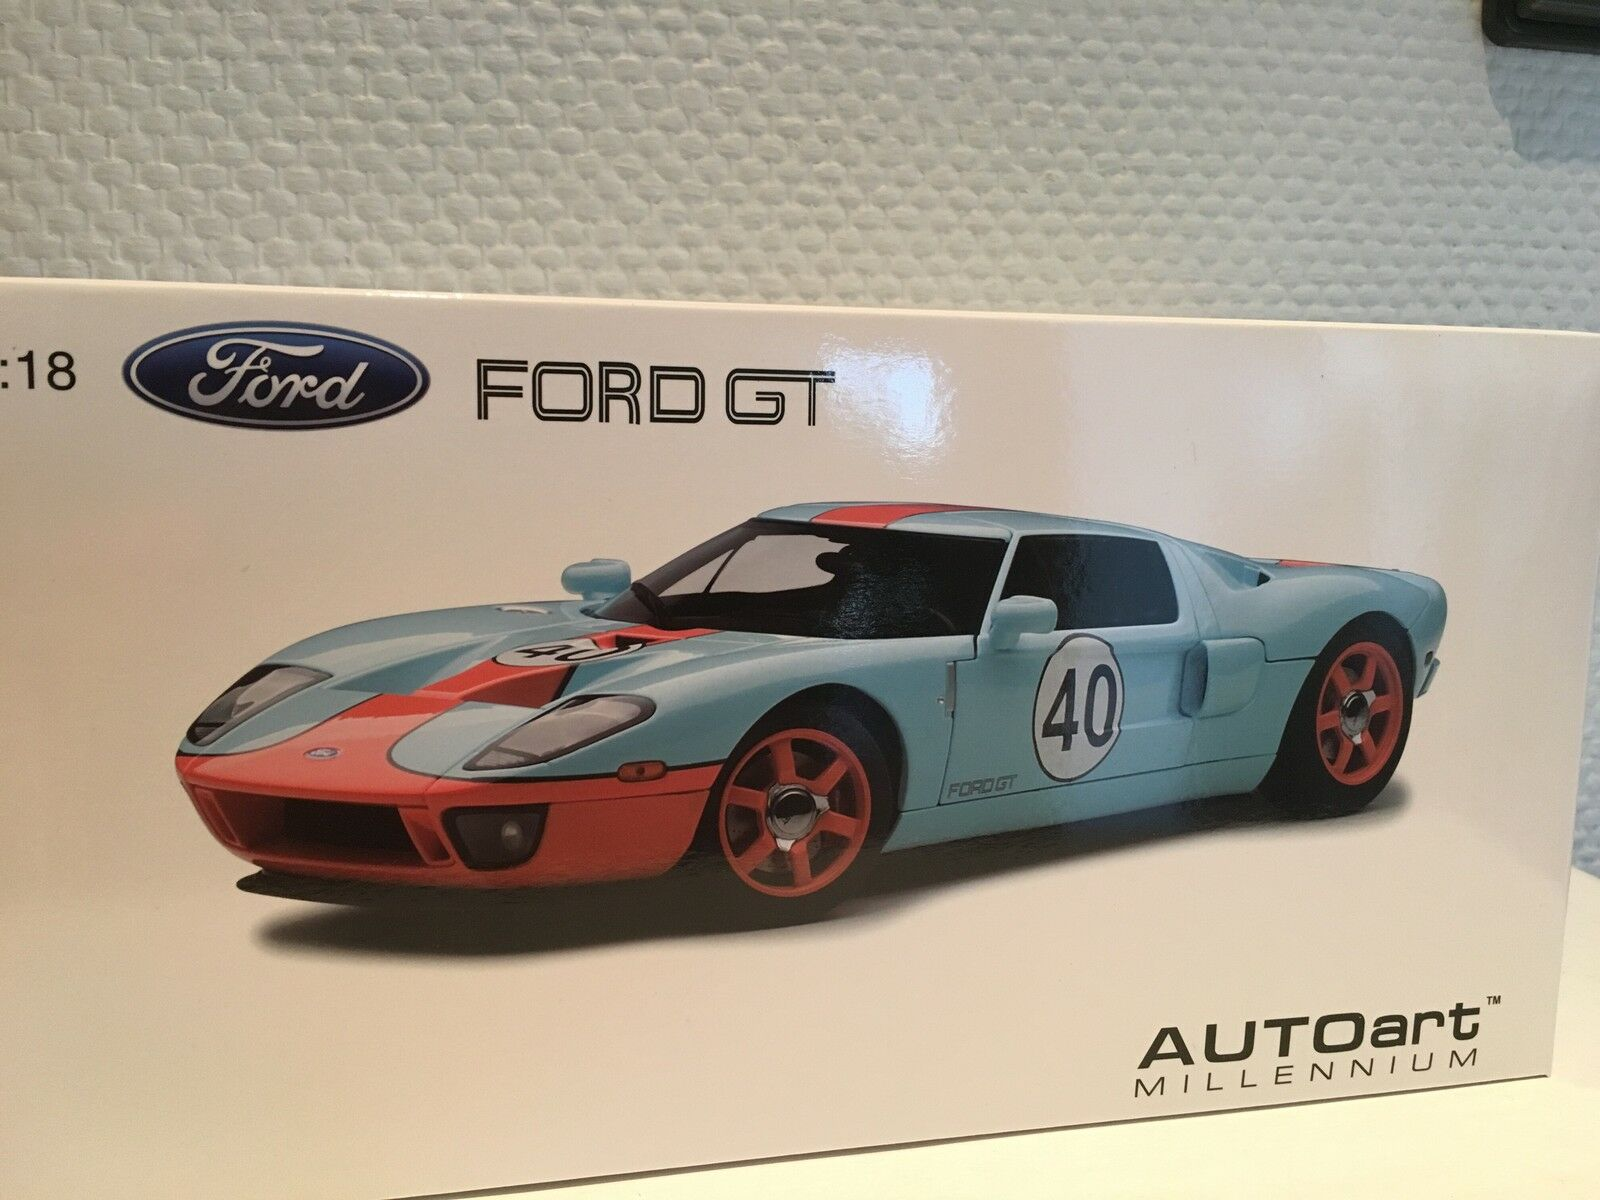 FORD GT LM 2004 Gulf livery  40 1 18 18 18 Autoart NUOVO & OVP 057a52